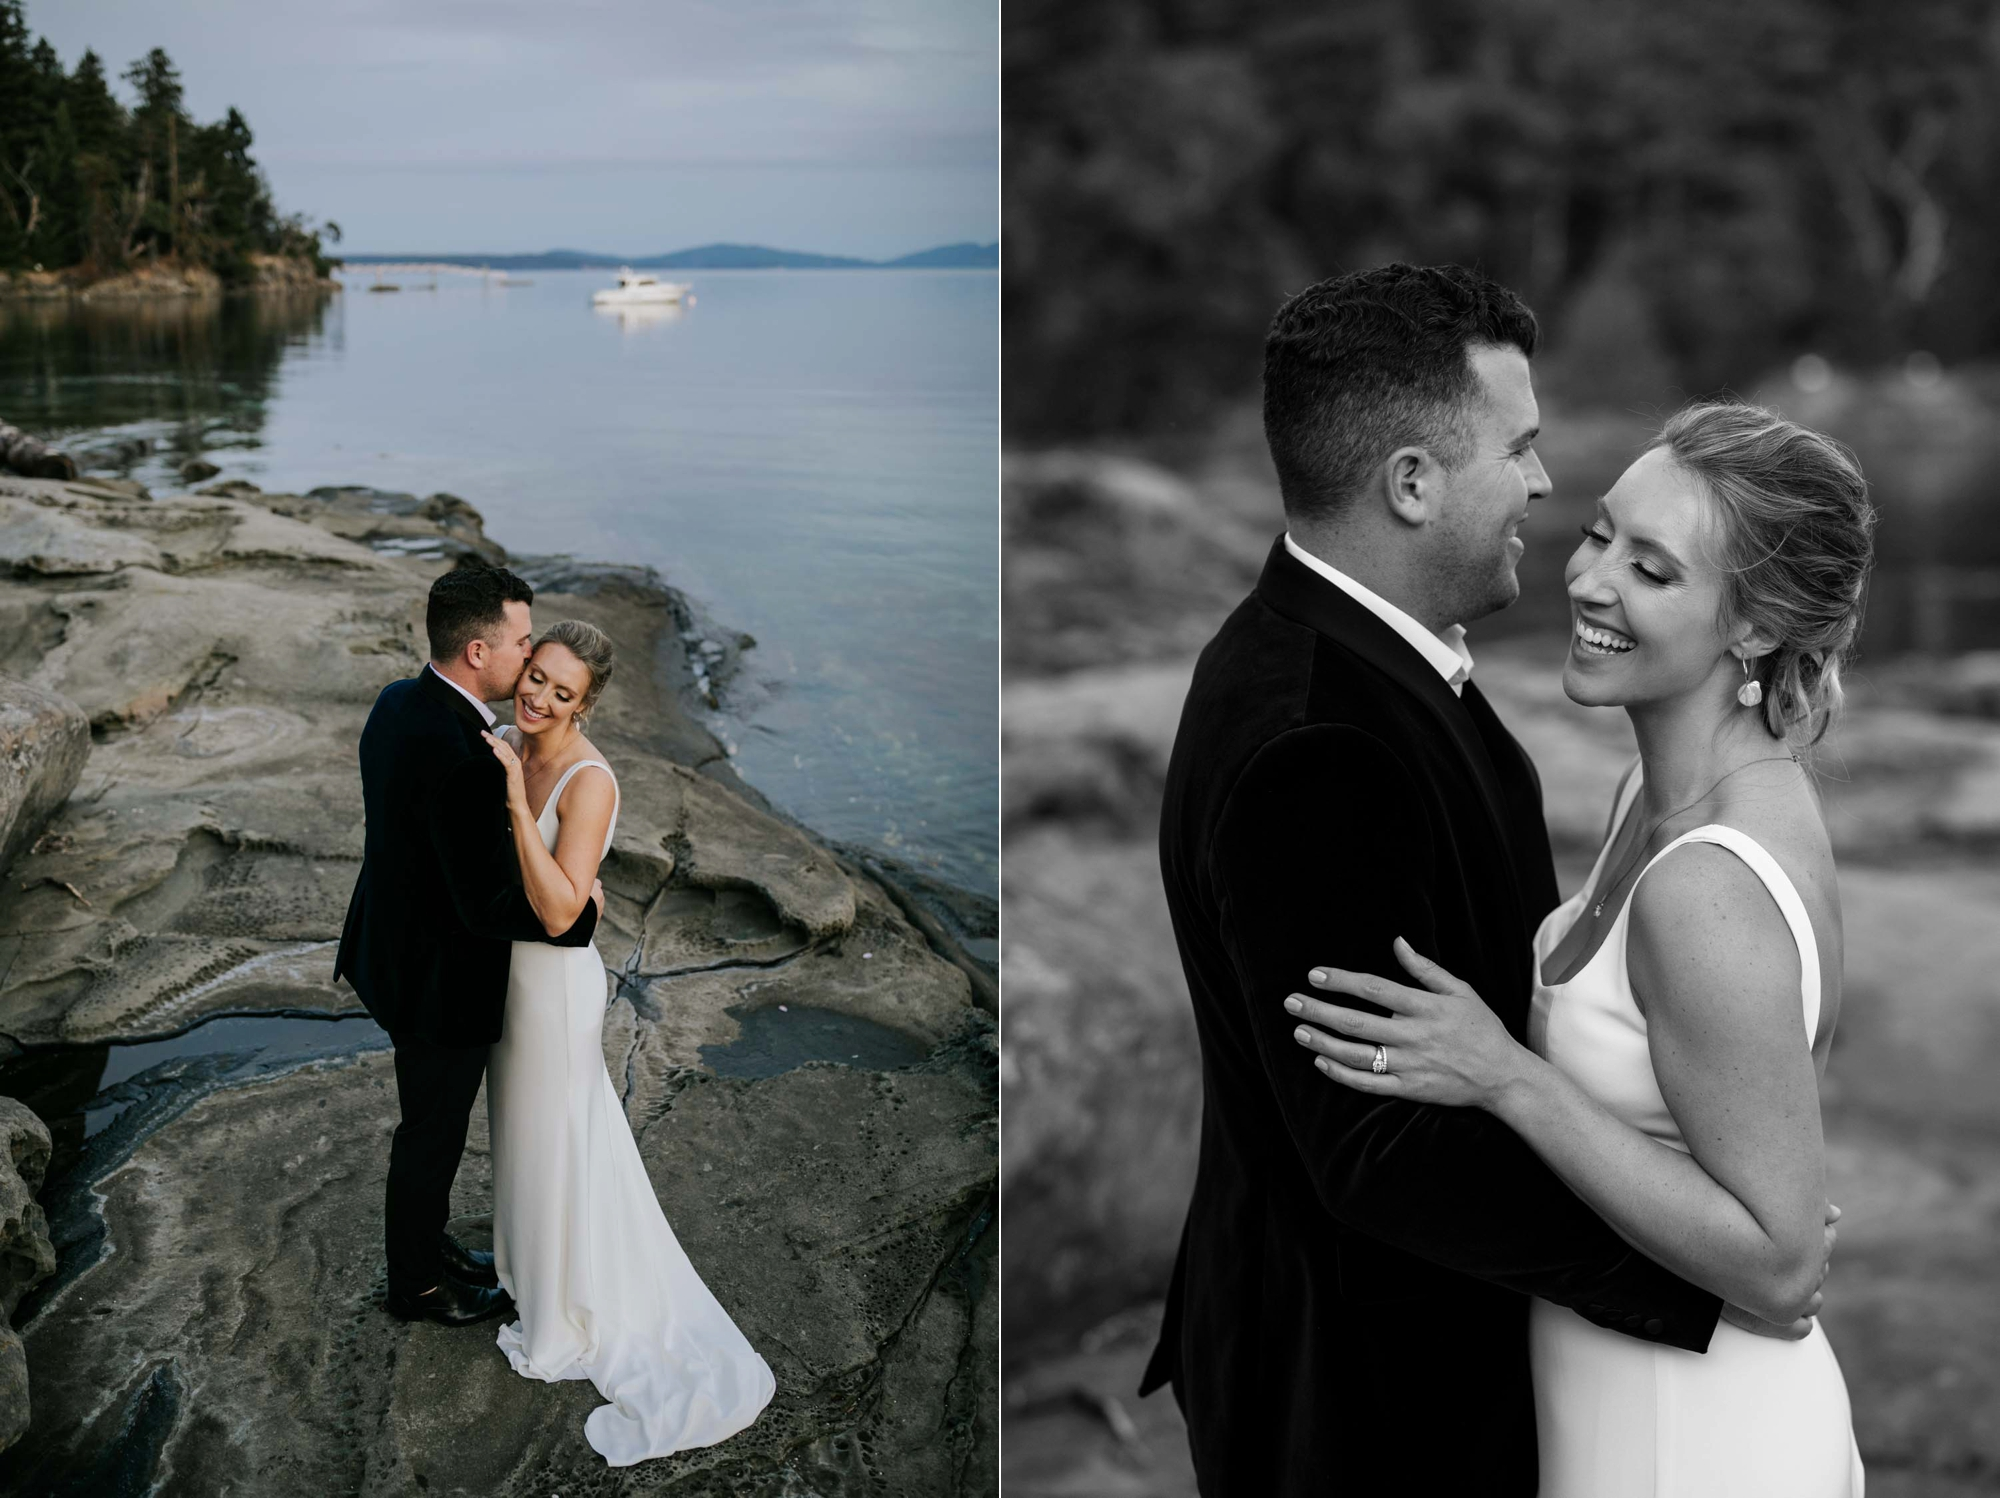 Natural Vancouver Island Wedding Photographer based in Victoria